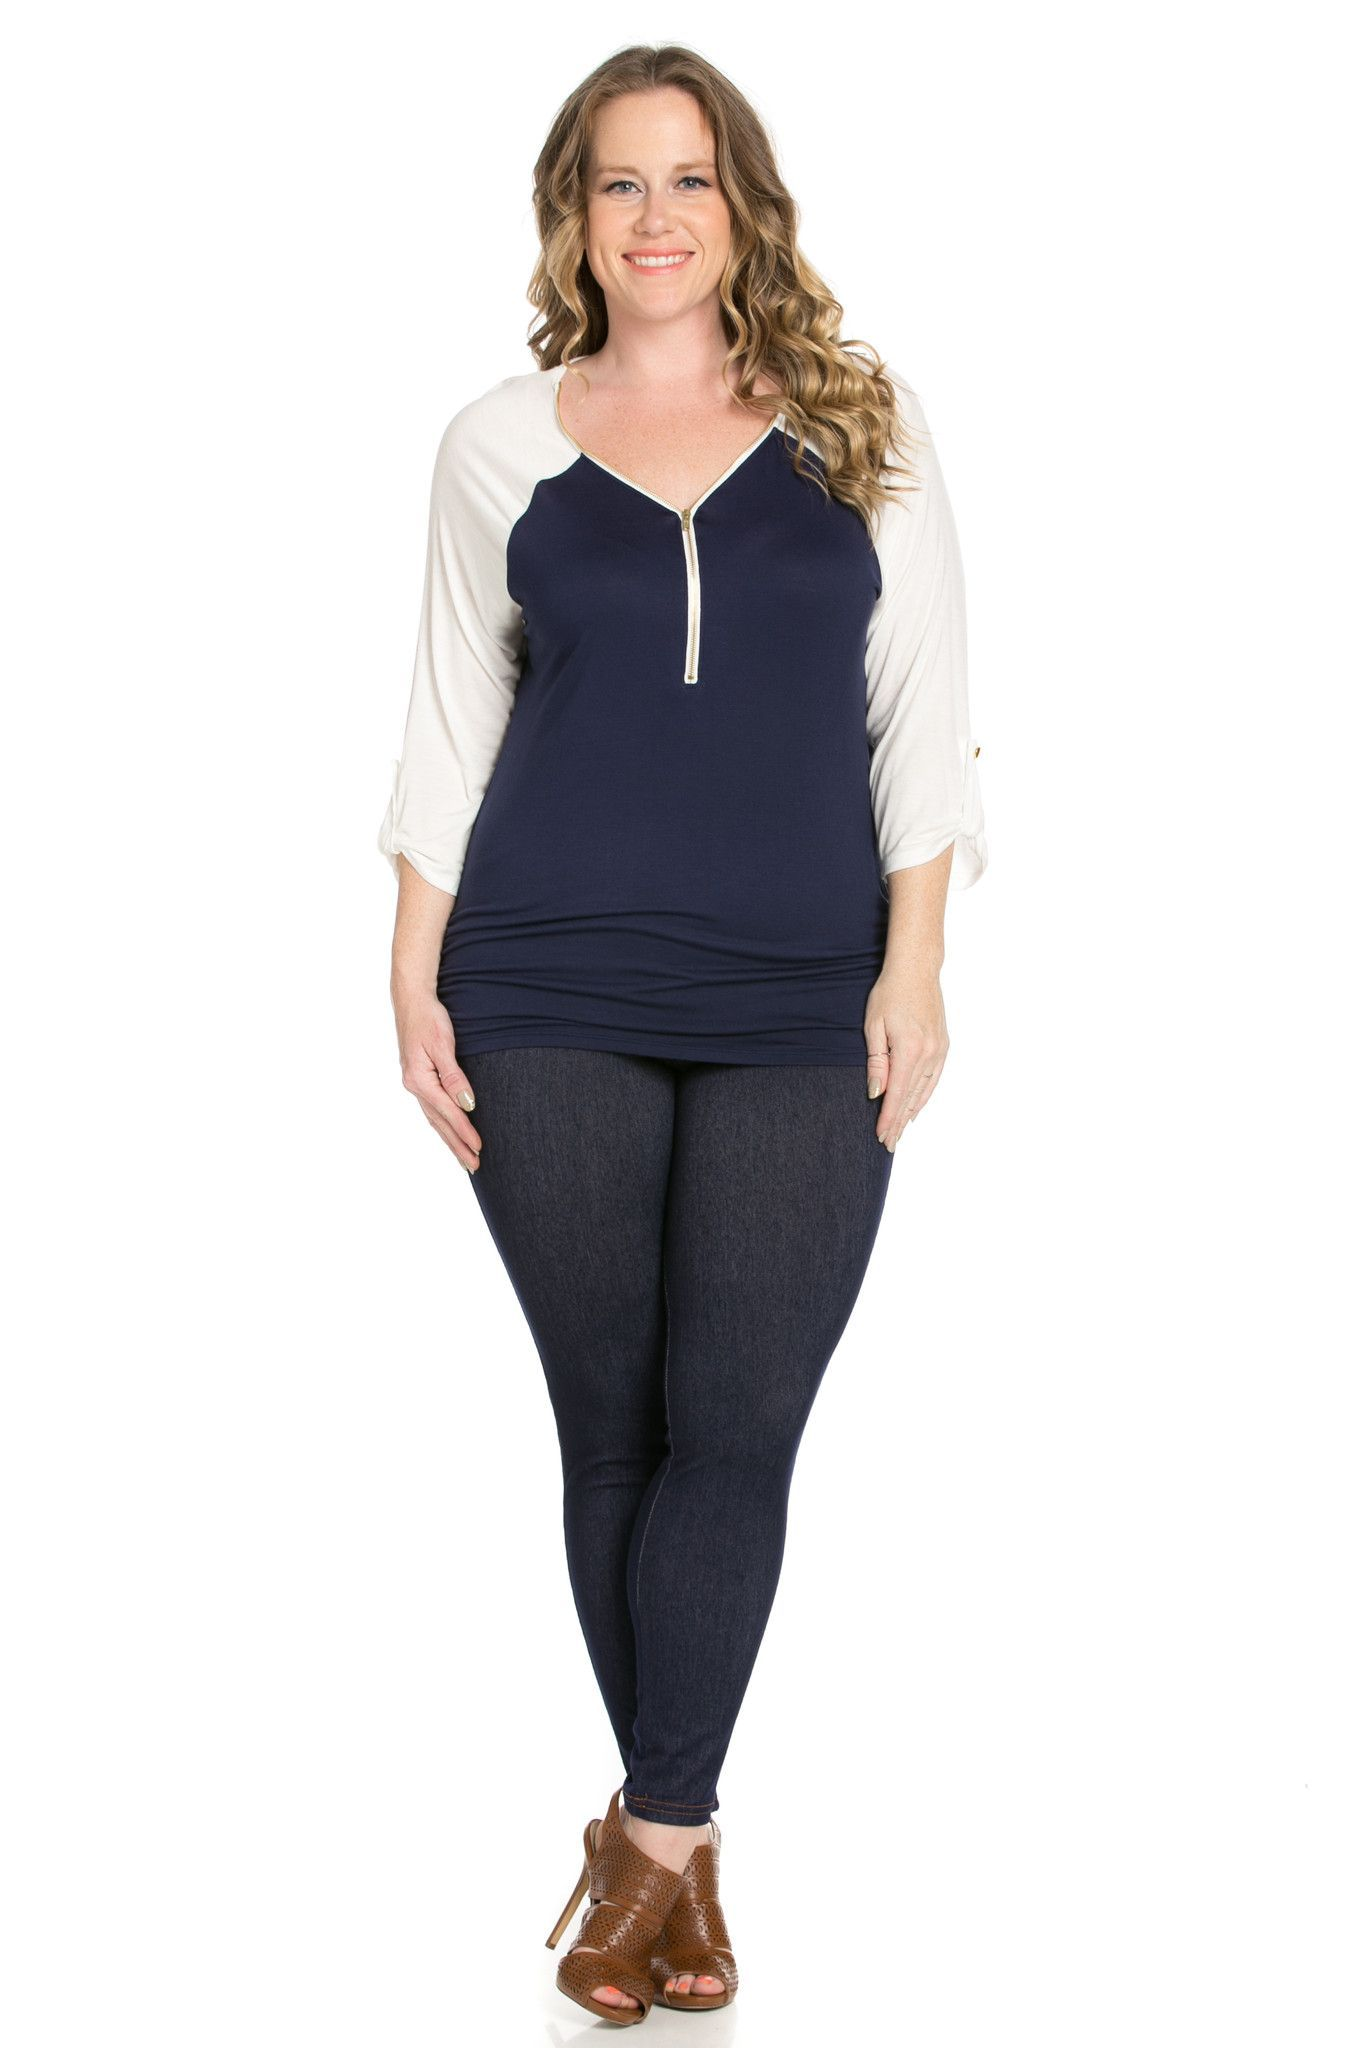 Zippered Front Two Tone Navy/White Top